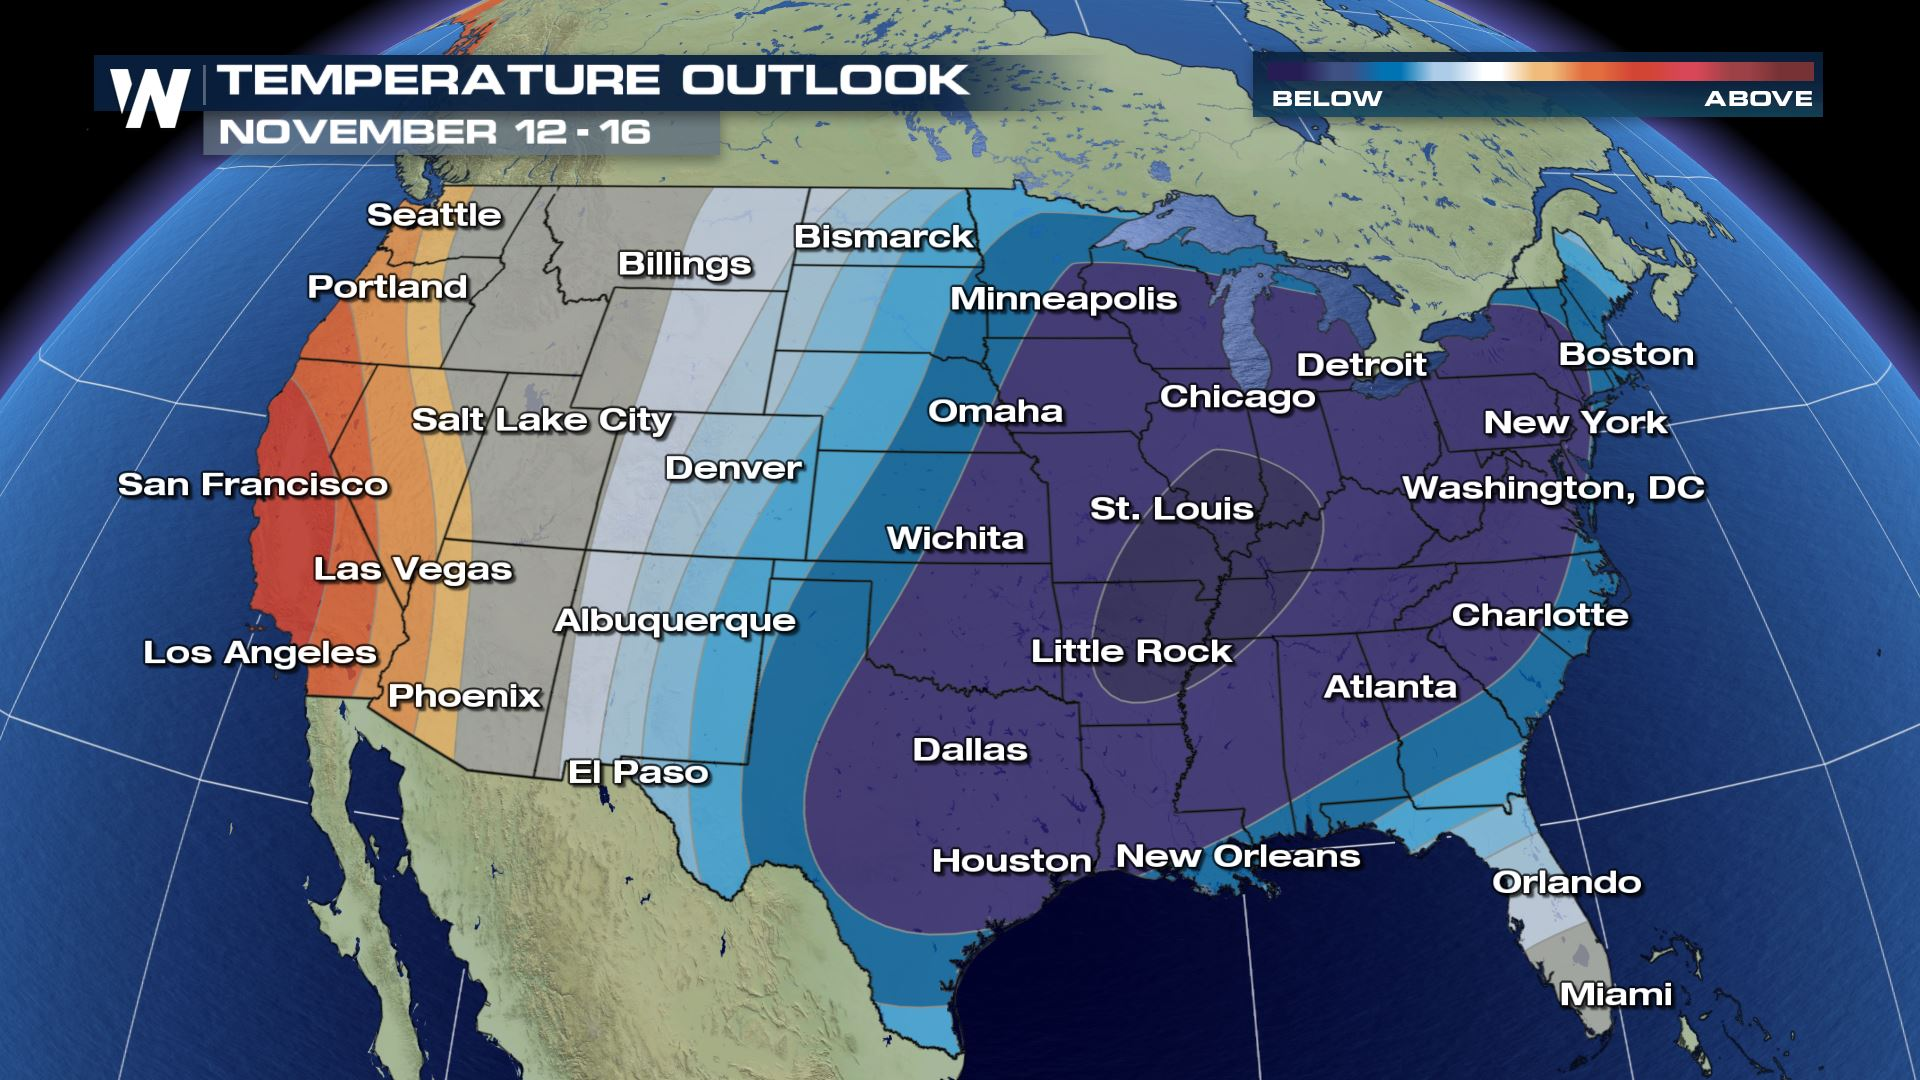 December-Like Weather to Invade North-Central U.S.